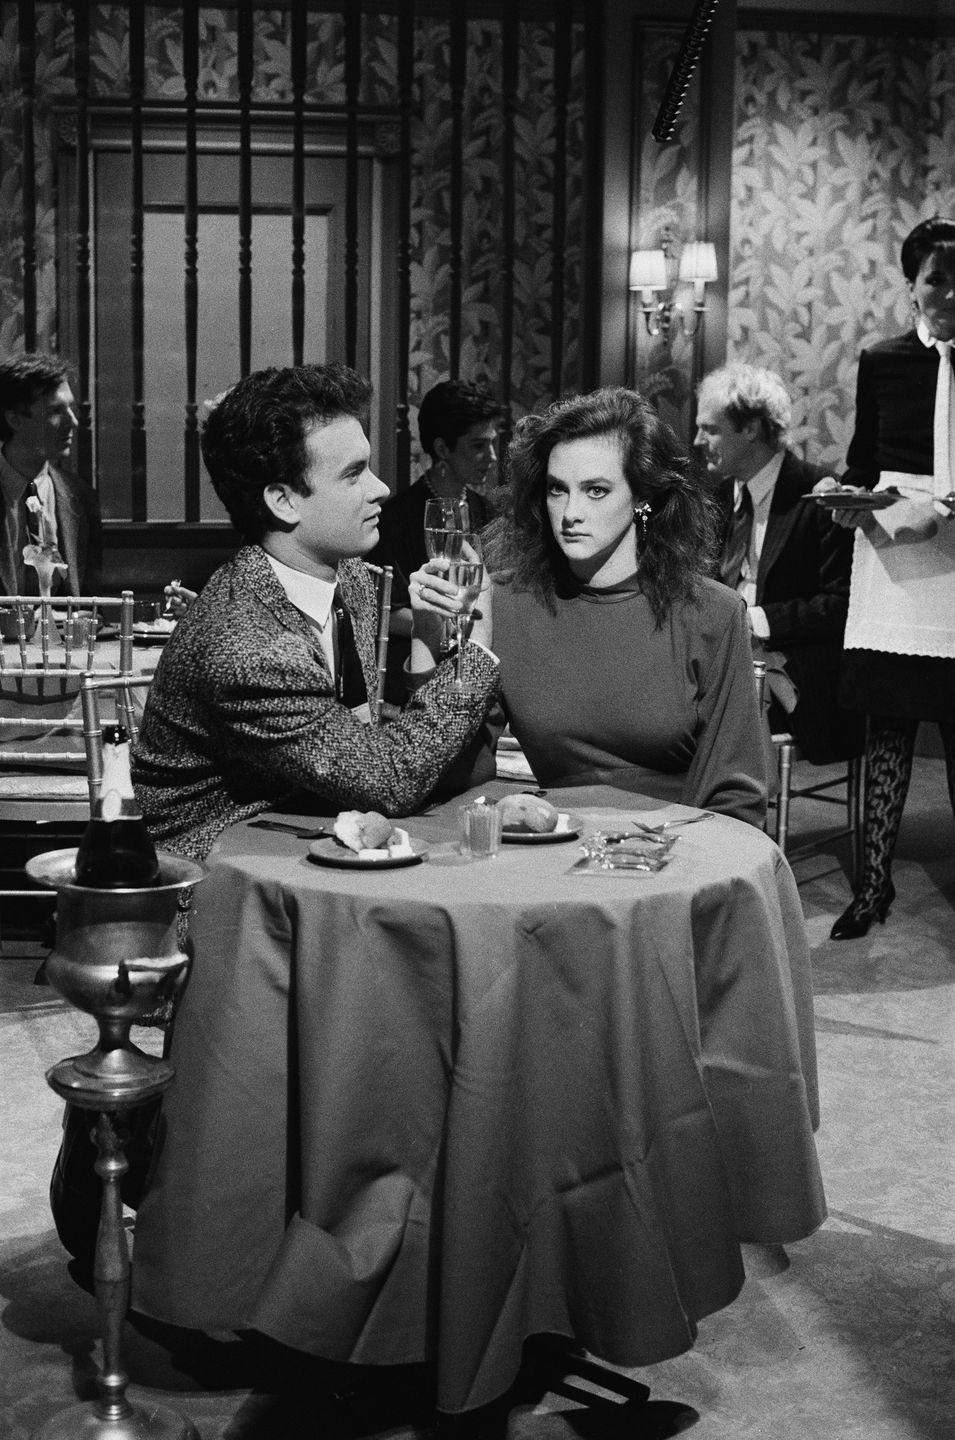 <p>When Lorne Michaels returned to produce <em>SNL</em> in 1985, he hired all new cast members, including Joan Cusack. After the season received low ratings, he fired nearly all of them, including Joan. </p>